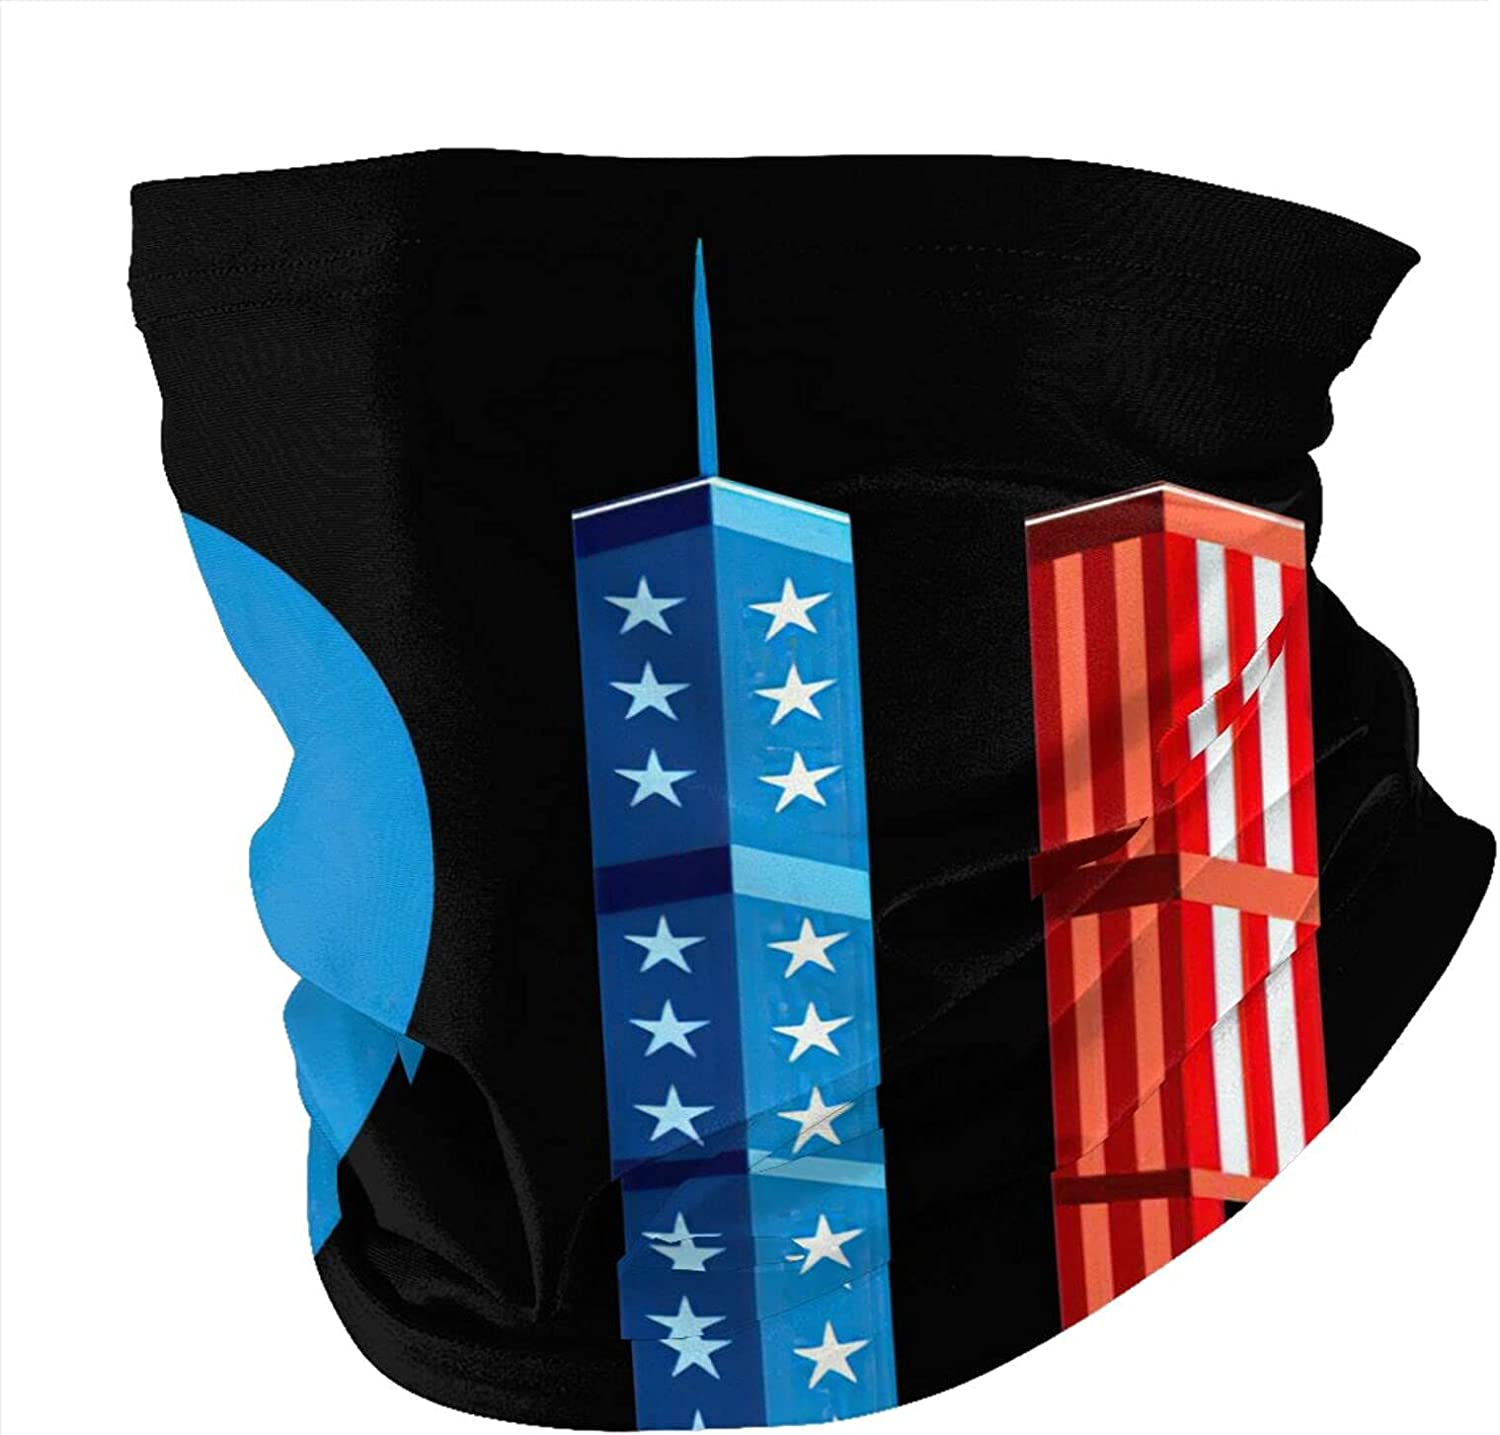 Never Forget September 11 Attacks Neck Gaiter Face Masks Reusable Cloth Face Masks Washable Bandana Face Masks Sun Dust Protection Balaclava Face Cover Scarf Shield For Fishing Cycling